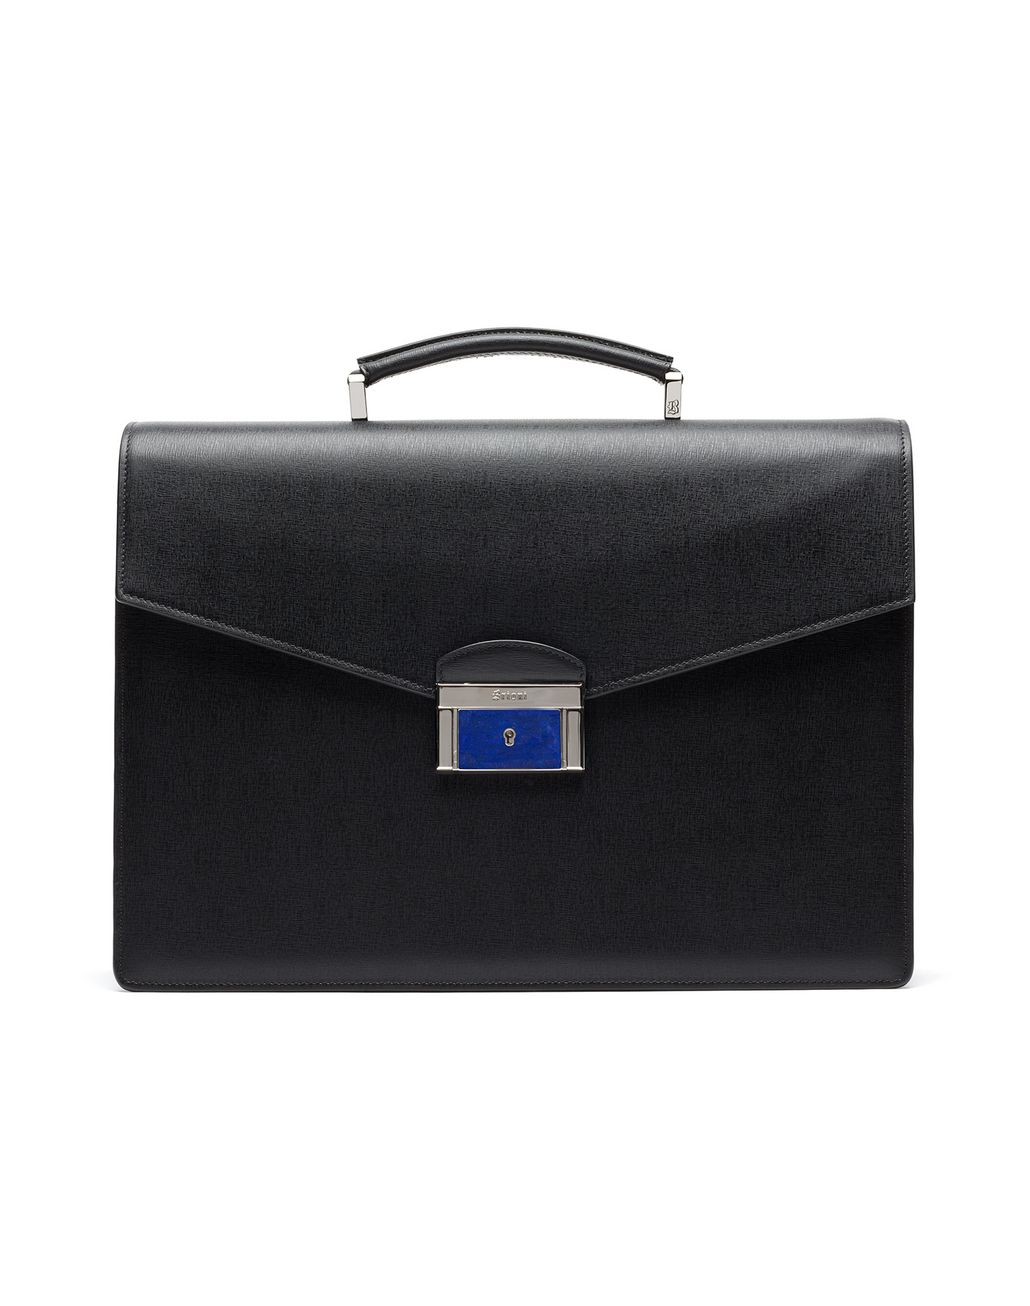 BRIONI Black Saffiano Briefcase with Lapis Lazuli Bag Man f